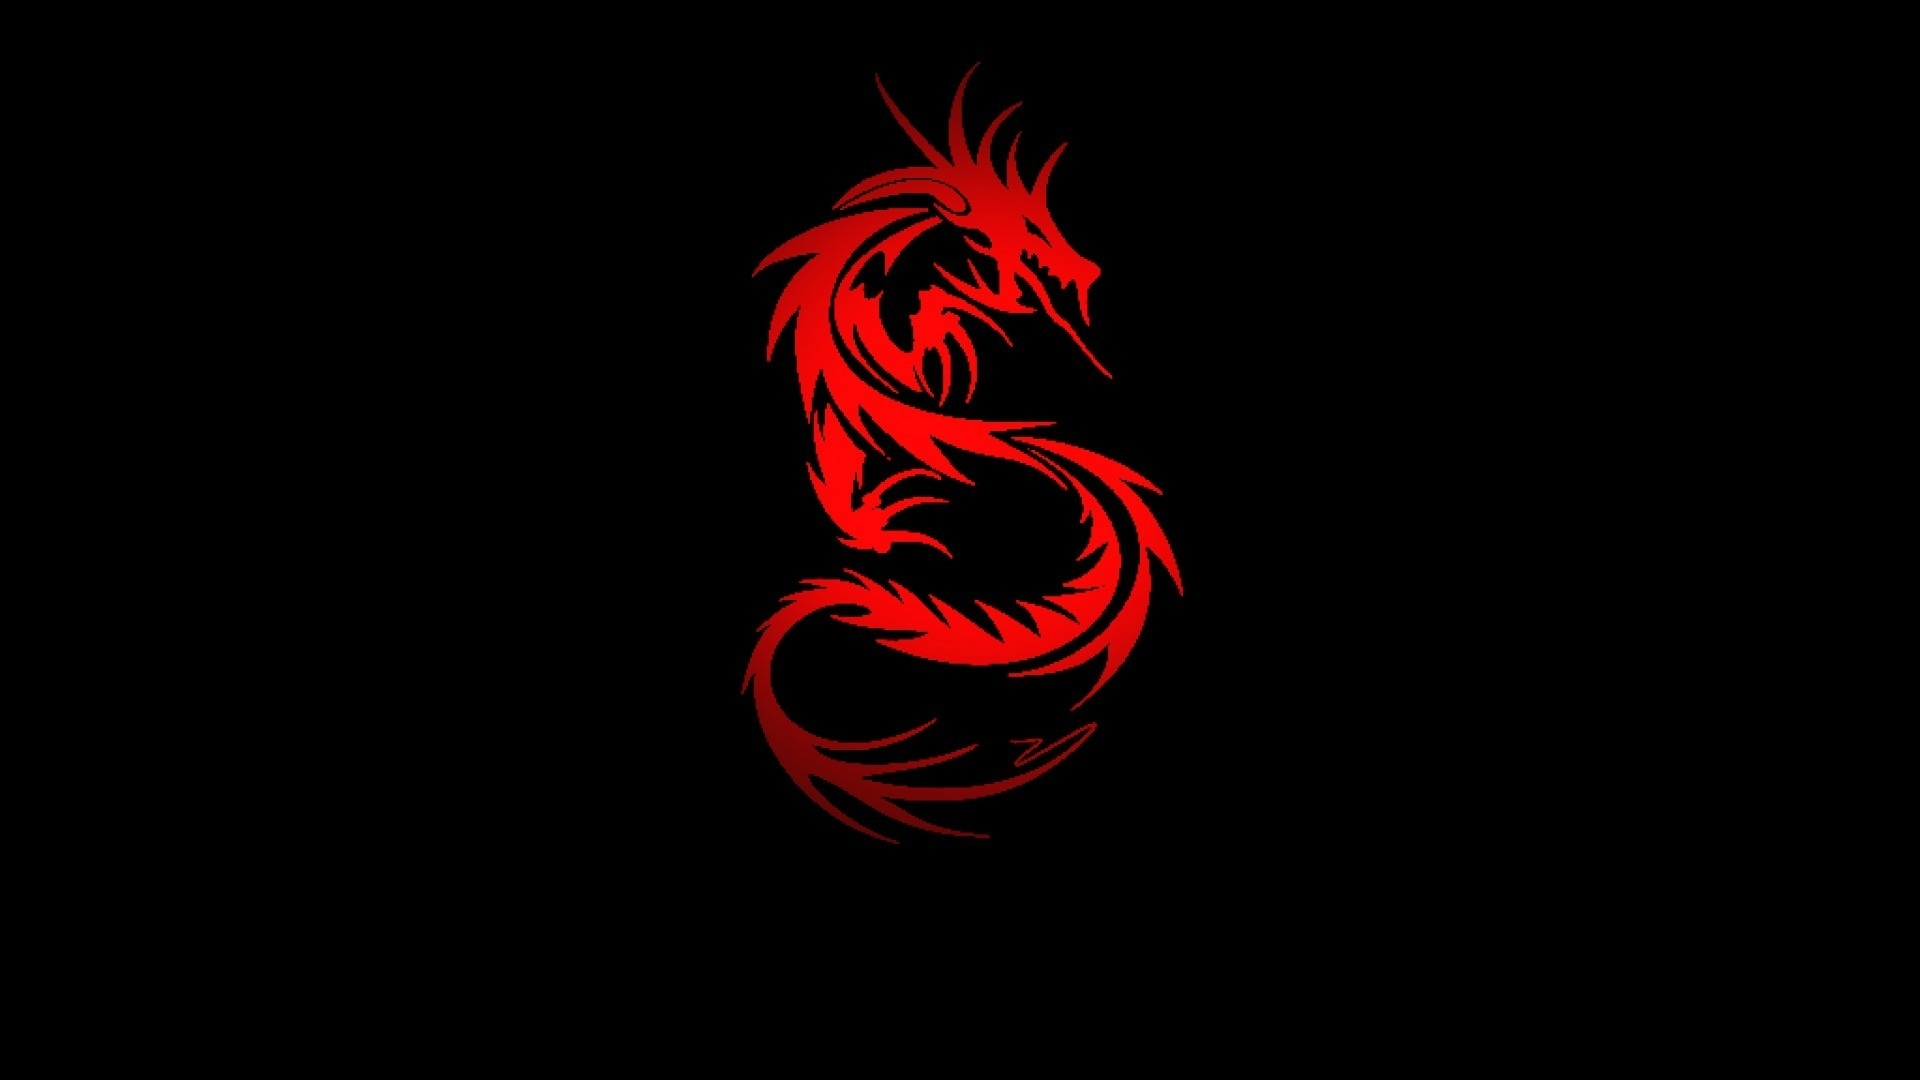 10 Latest Red Dragon Wallpaper Hd 1080P FULL HD 1920×1080 For PC Background